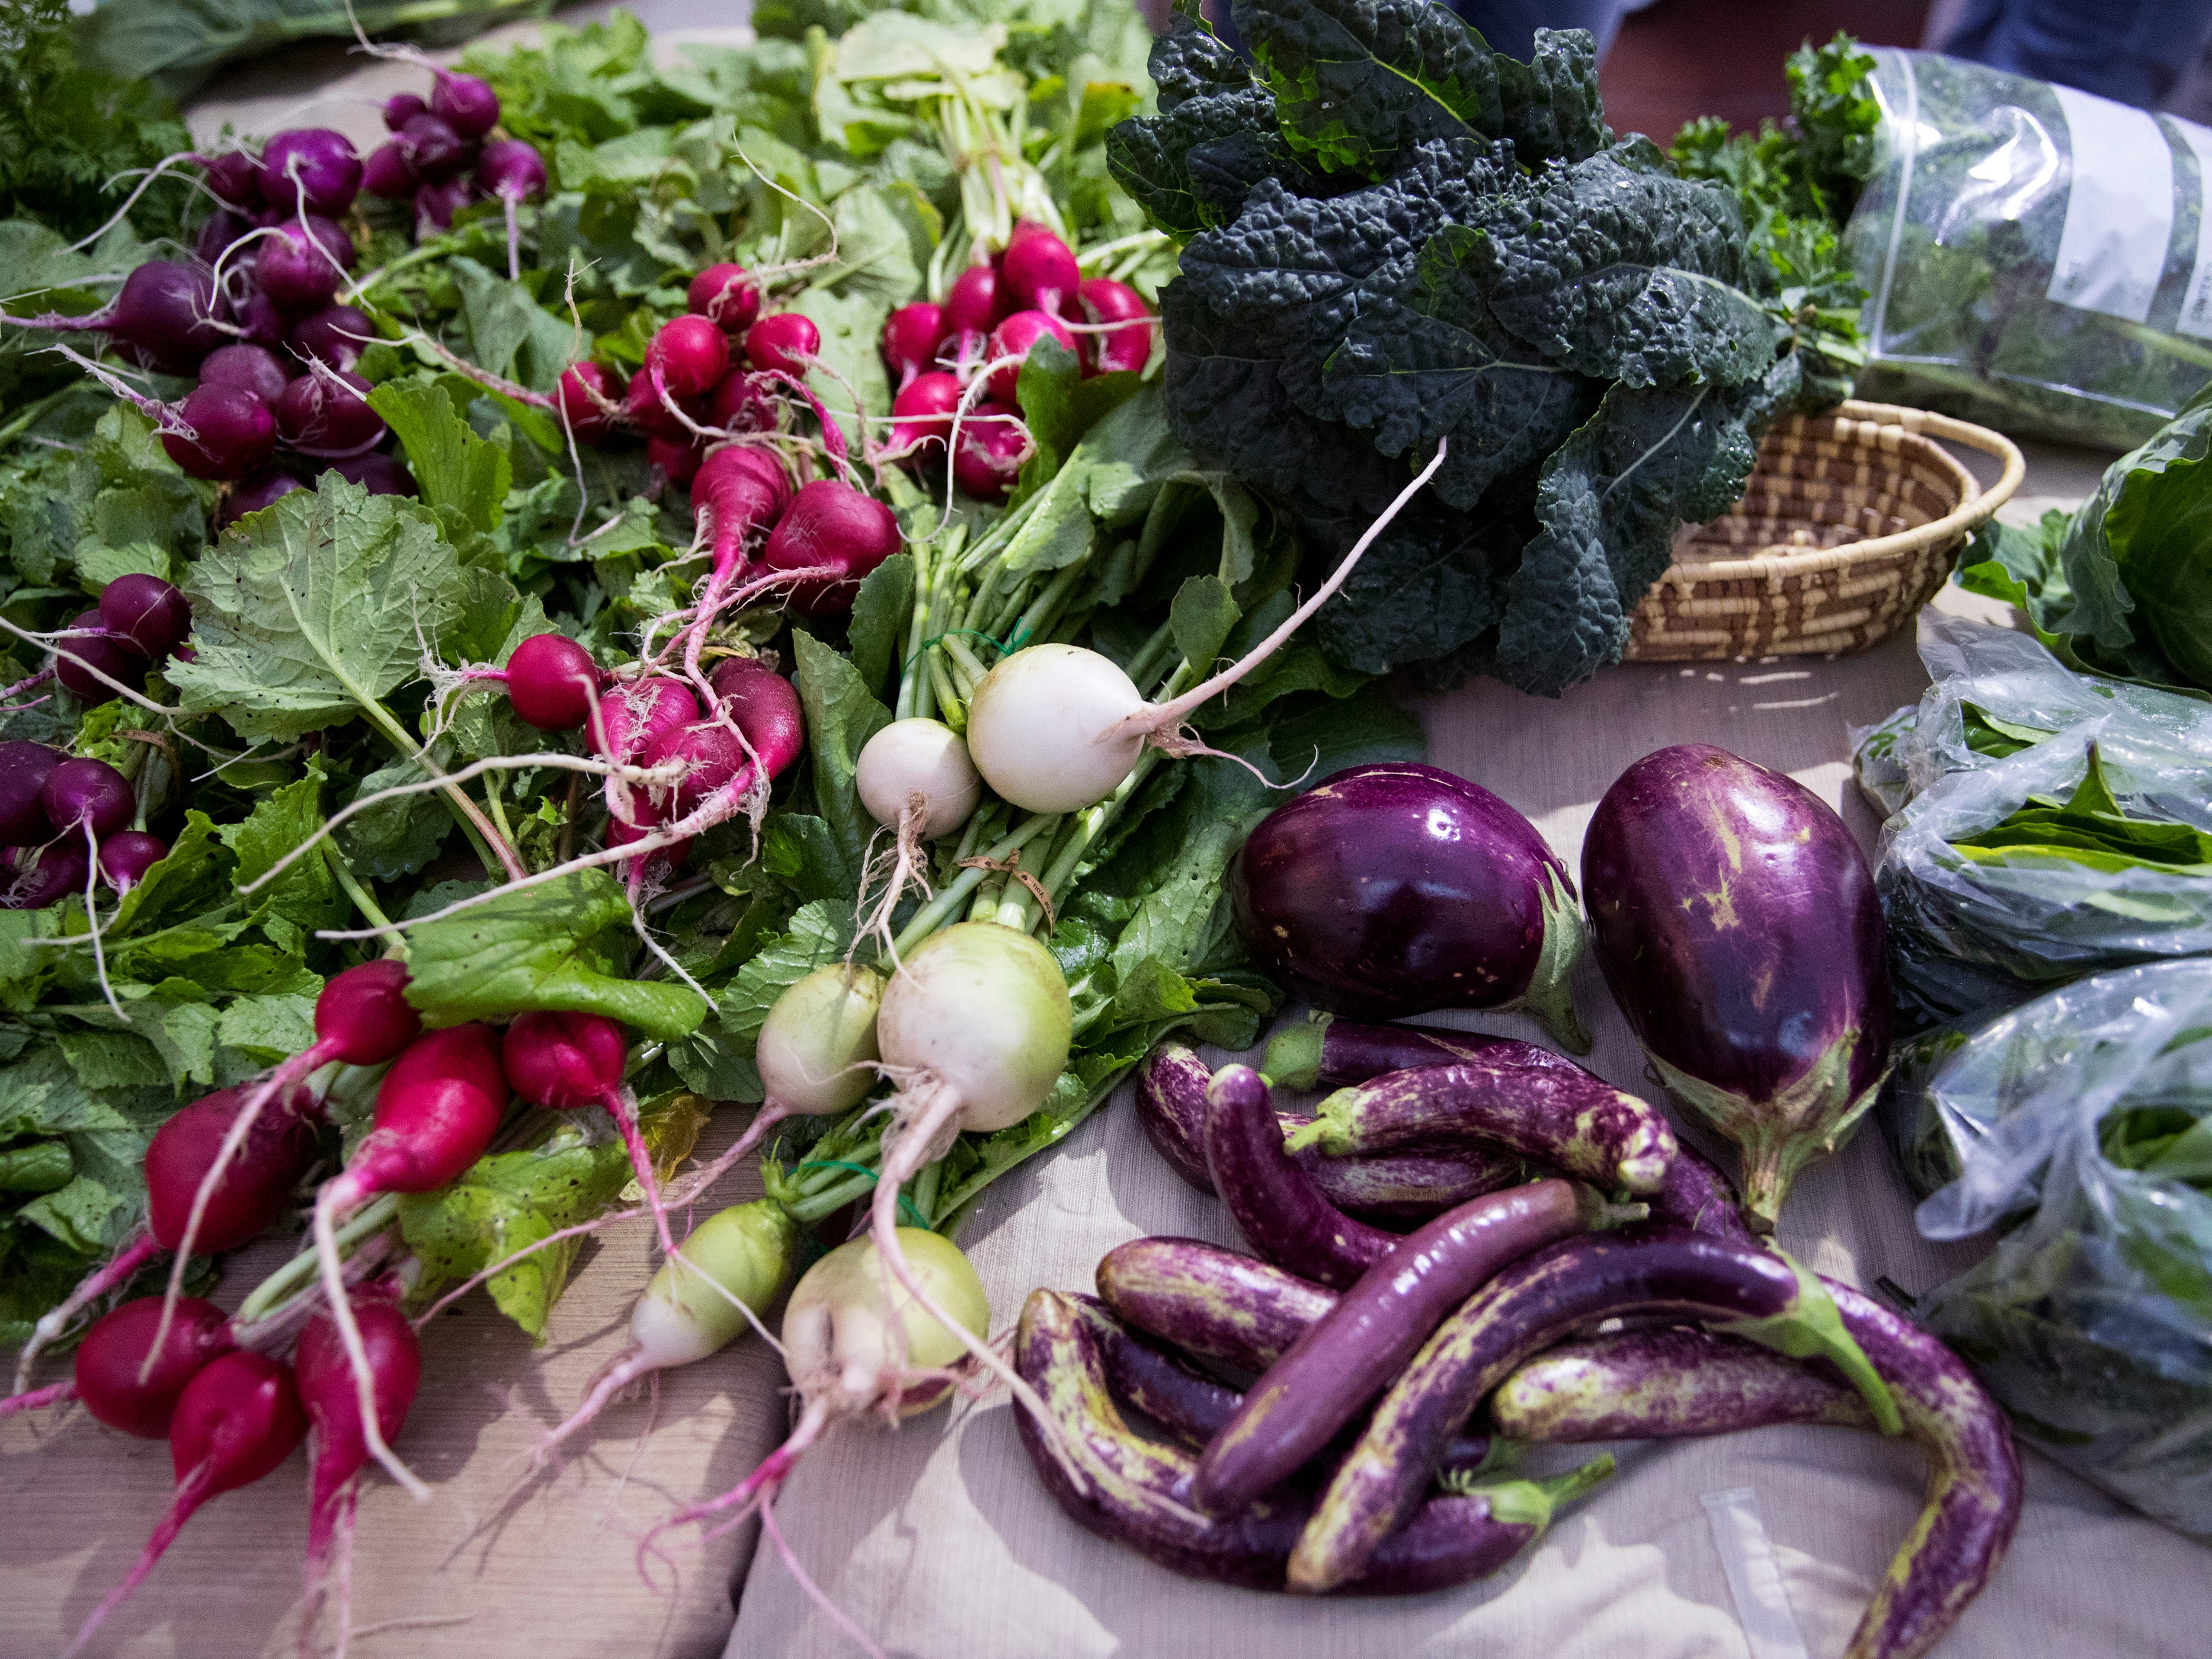 The Corpus Christi Downtown Farmers Market offers a variety of seasonal produce. It is open weekly on Wednesday from 5 to 8 pm at 100 N. Shoreline Blvd.